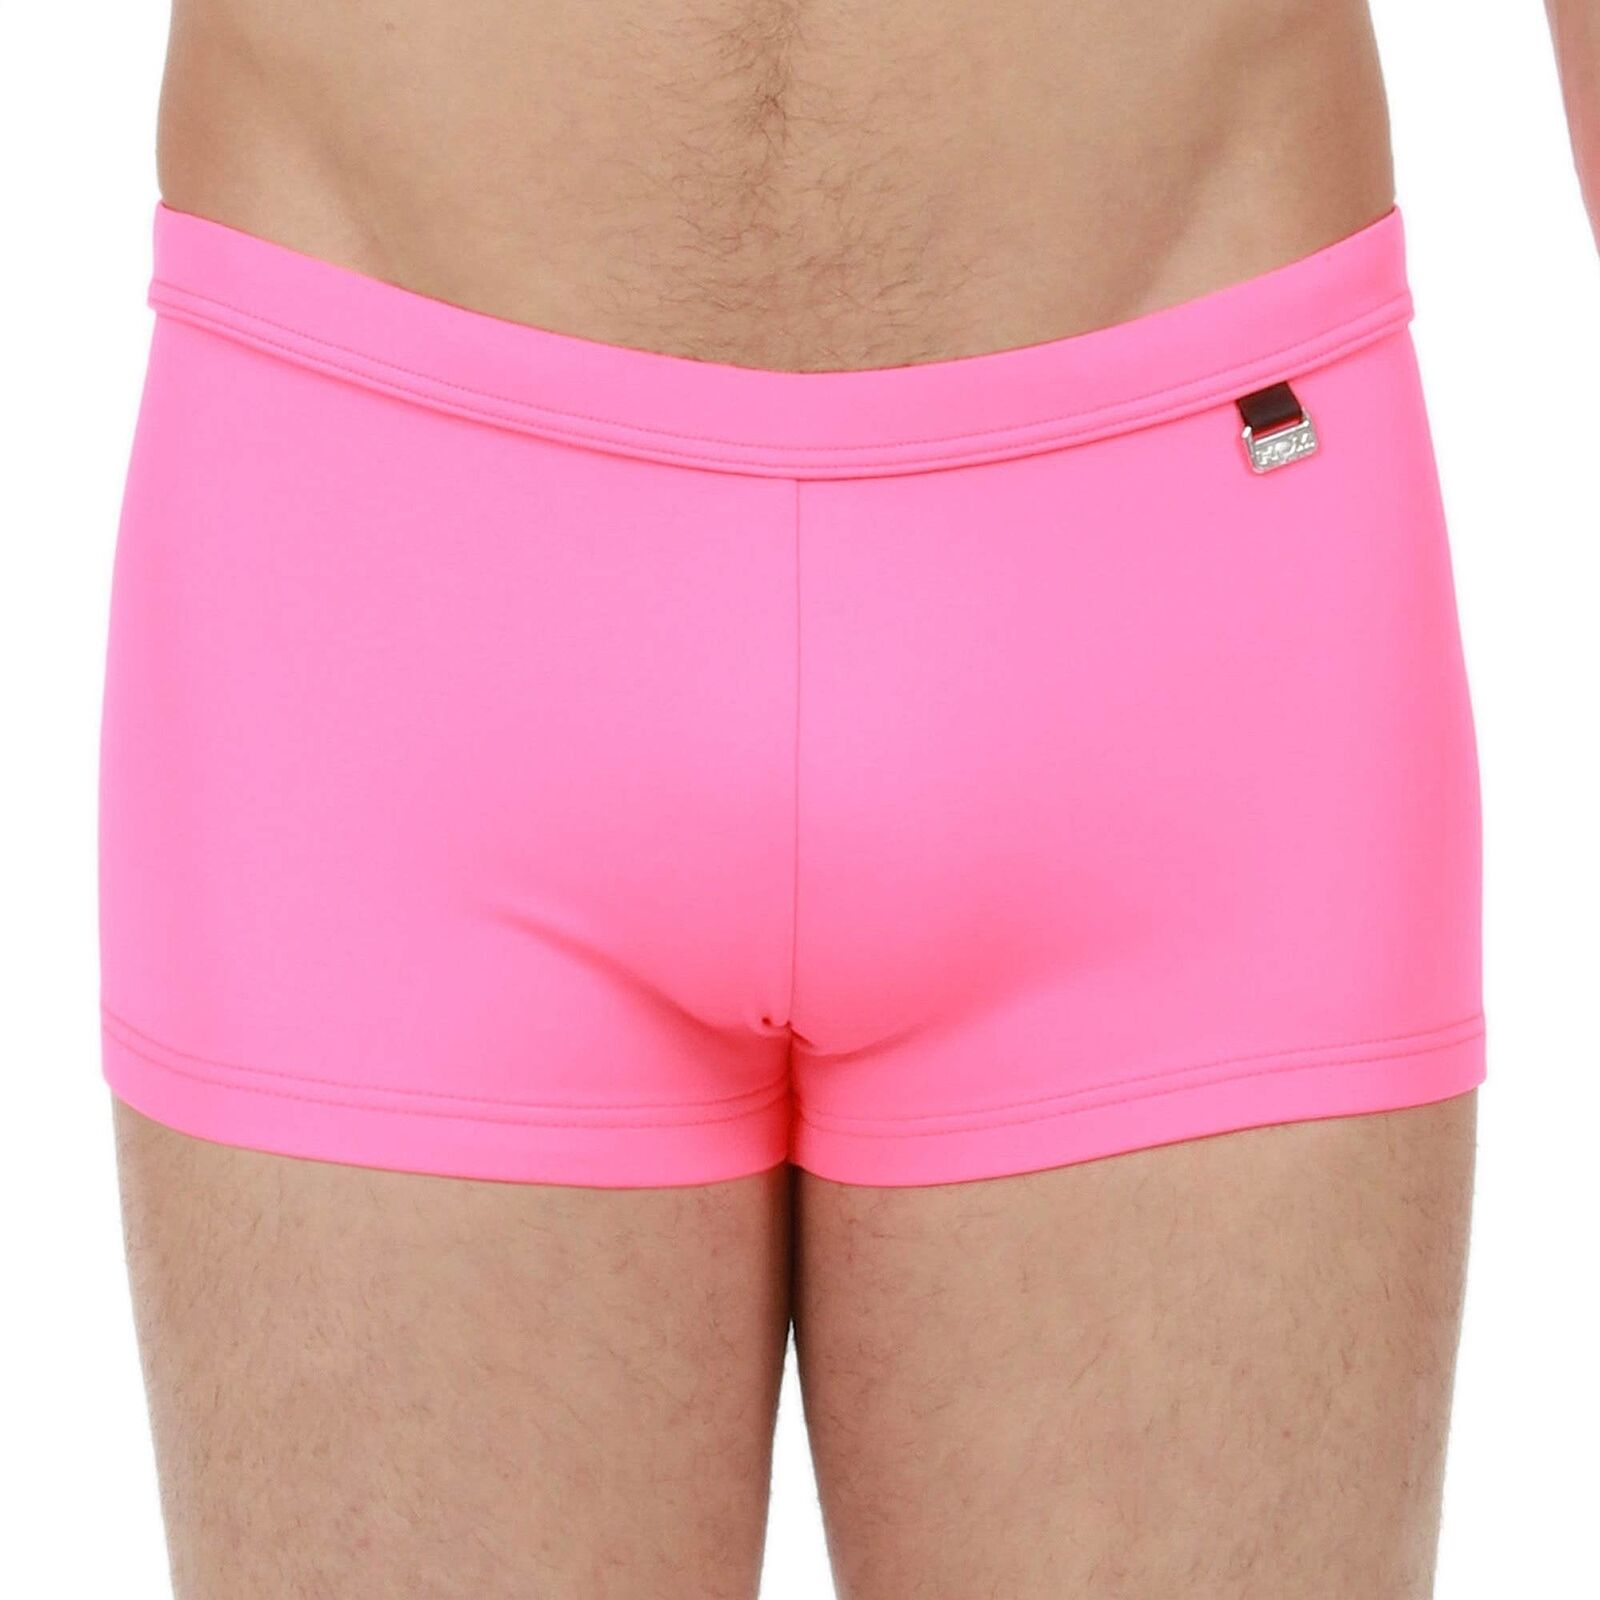 HOM Men's Splash Swim Shorts, Trunks. Pink Swimwear with Inside Flat Drawstring